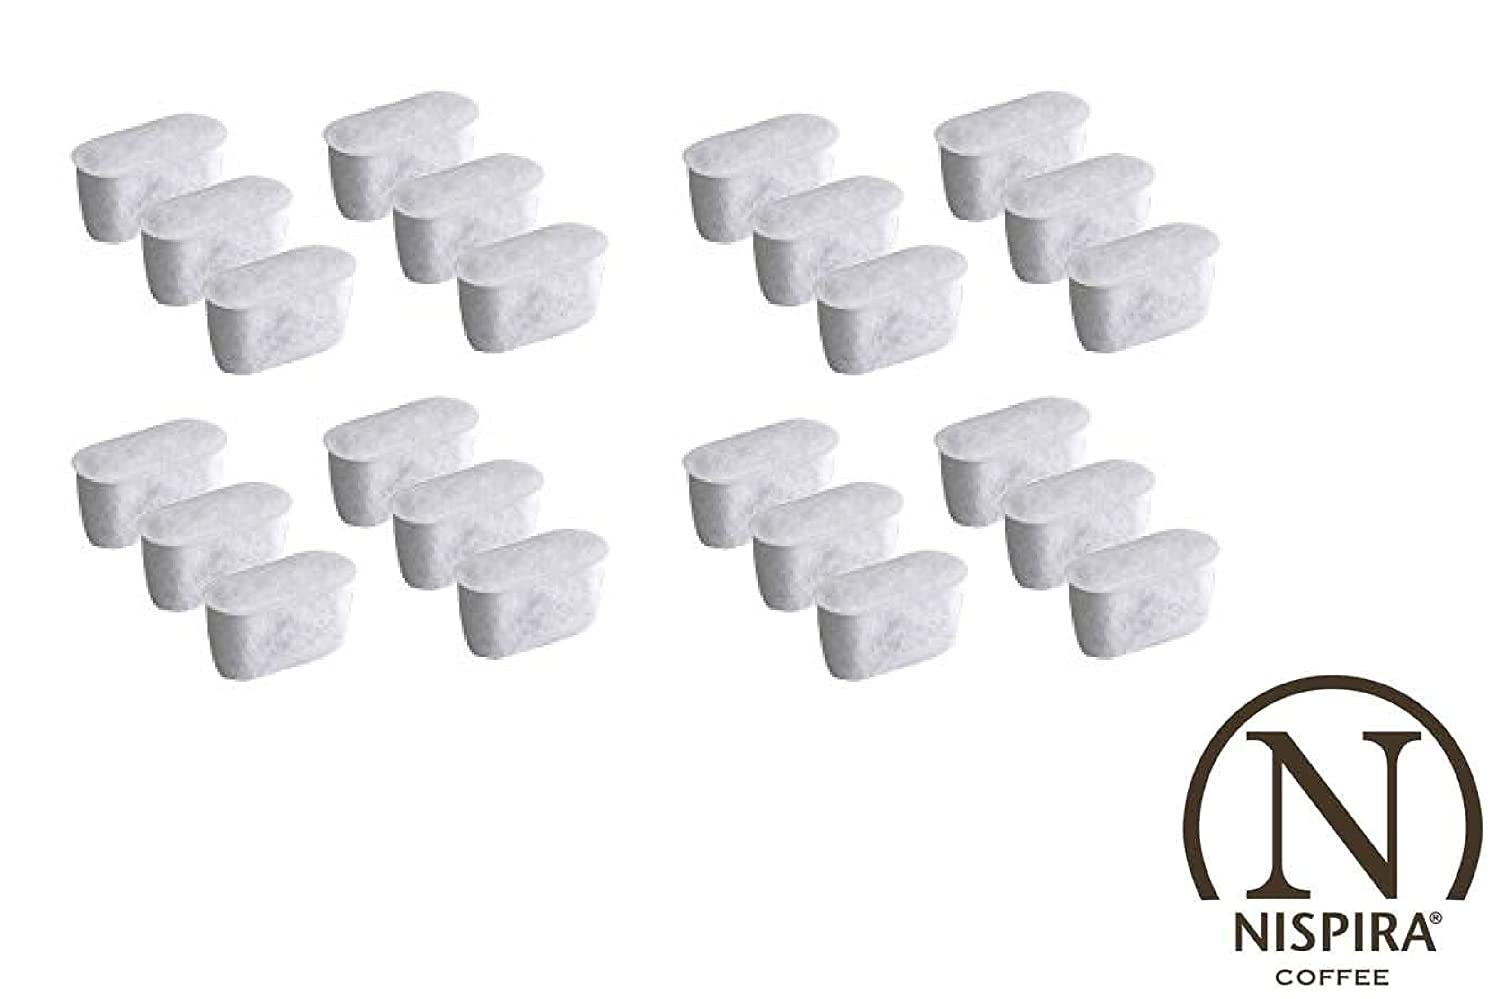 24 Nispira Activated Charcoal Water Filters Replacement, Compared To Cuisinart Coffee Machine Part DCC-RWF